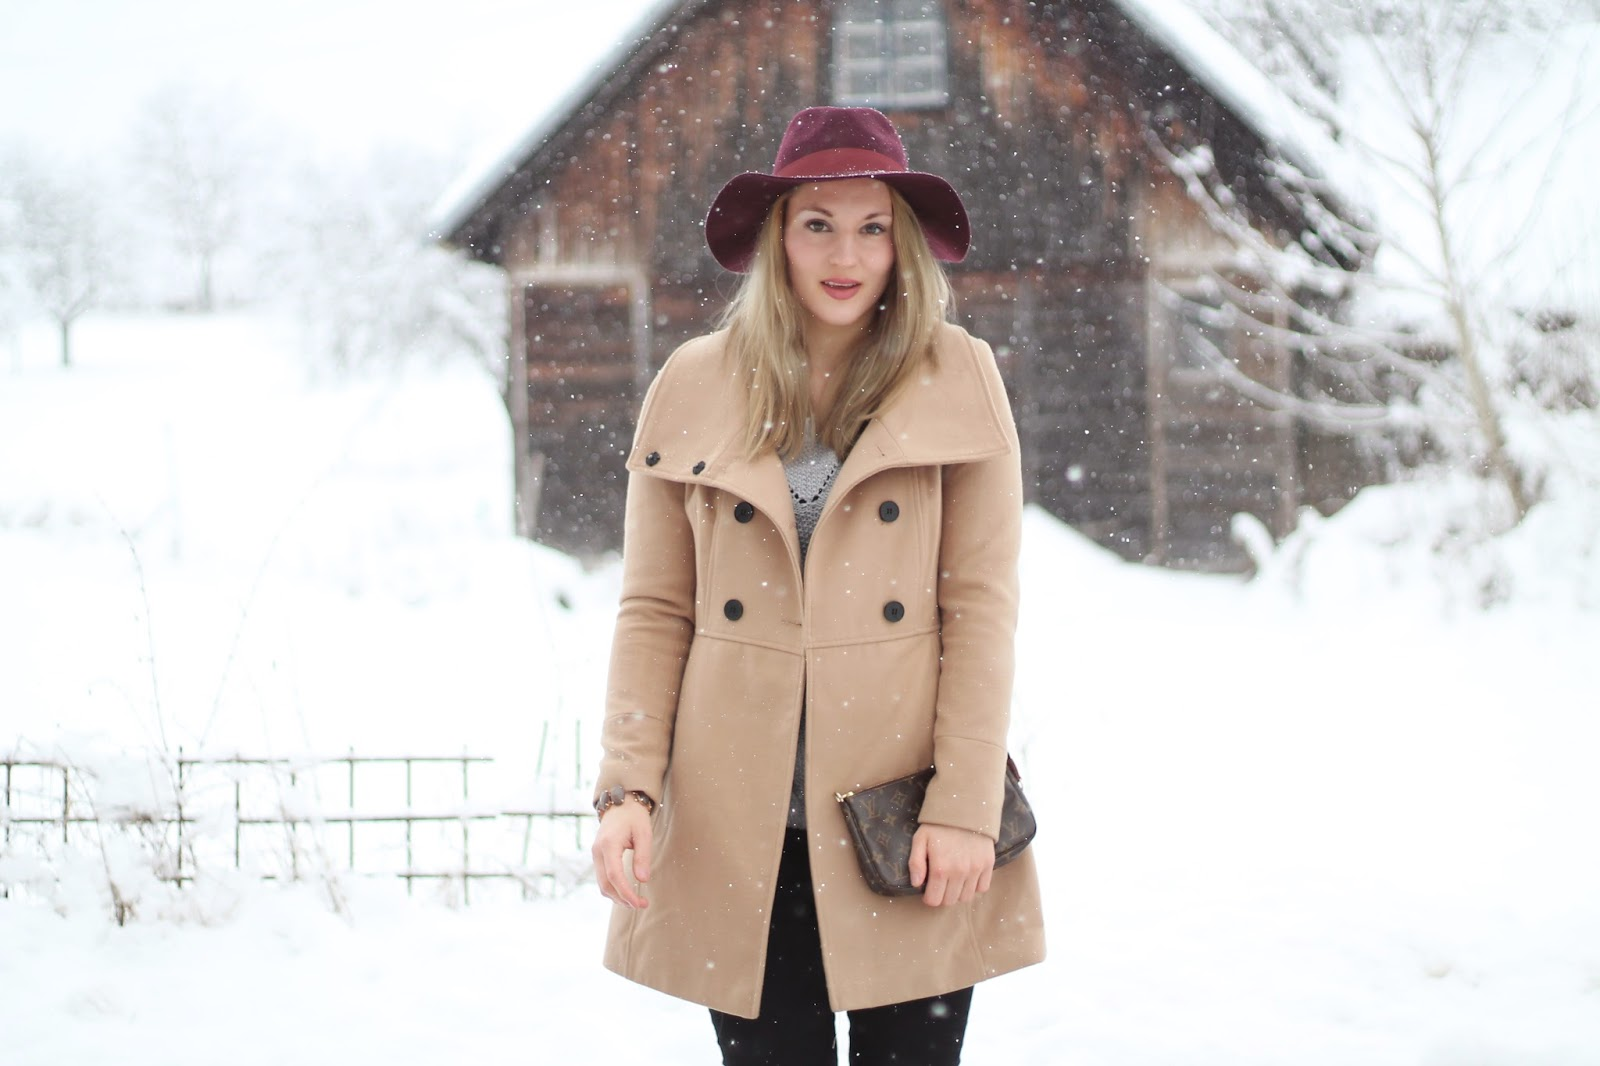 Fashionblogger Austria / Österreich / Deutsch / German / Kärnten / Carinthia / Klagenfurt / Köttmannsdorf / Winter Look / Classy / Edgy / Winter / WInter Style 2014 / Winter Look / Fashionista Look / Streetstyle Klagenfurt Vienna Wien Austria / /Winter Outfit / Bordeauxroter Hut Zalando Dorothy Perkins Red Hat / Camel Coat Pimkie Beiger Mantel / Neutral Shades / How to Style / Louis Vuitton Pochette Accessoires / Grey Knitted Sweater Strickpullover H&M / Overknees Black Stiefel Schwarz Deichmann / Winter / Snow/ Snowy Outfit / Outfit for the snow /